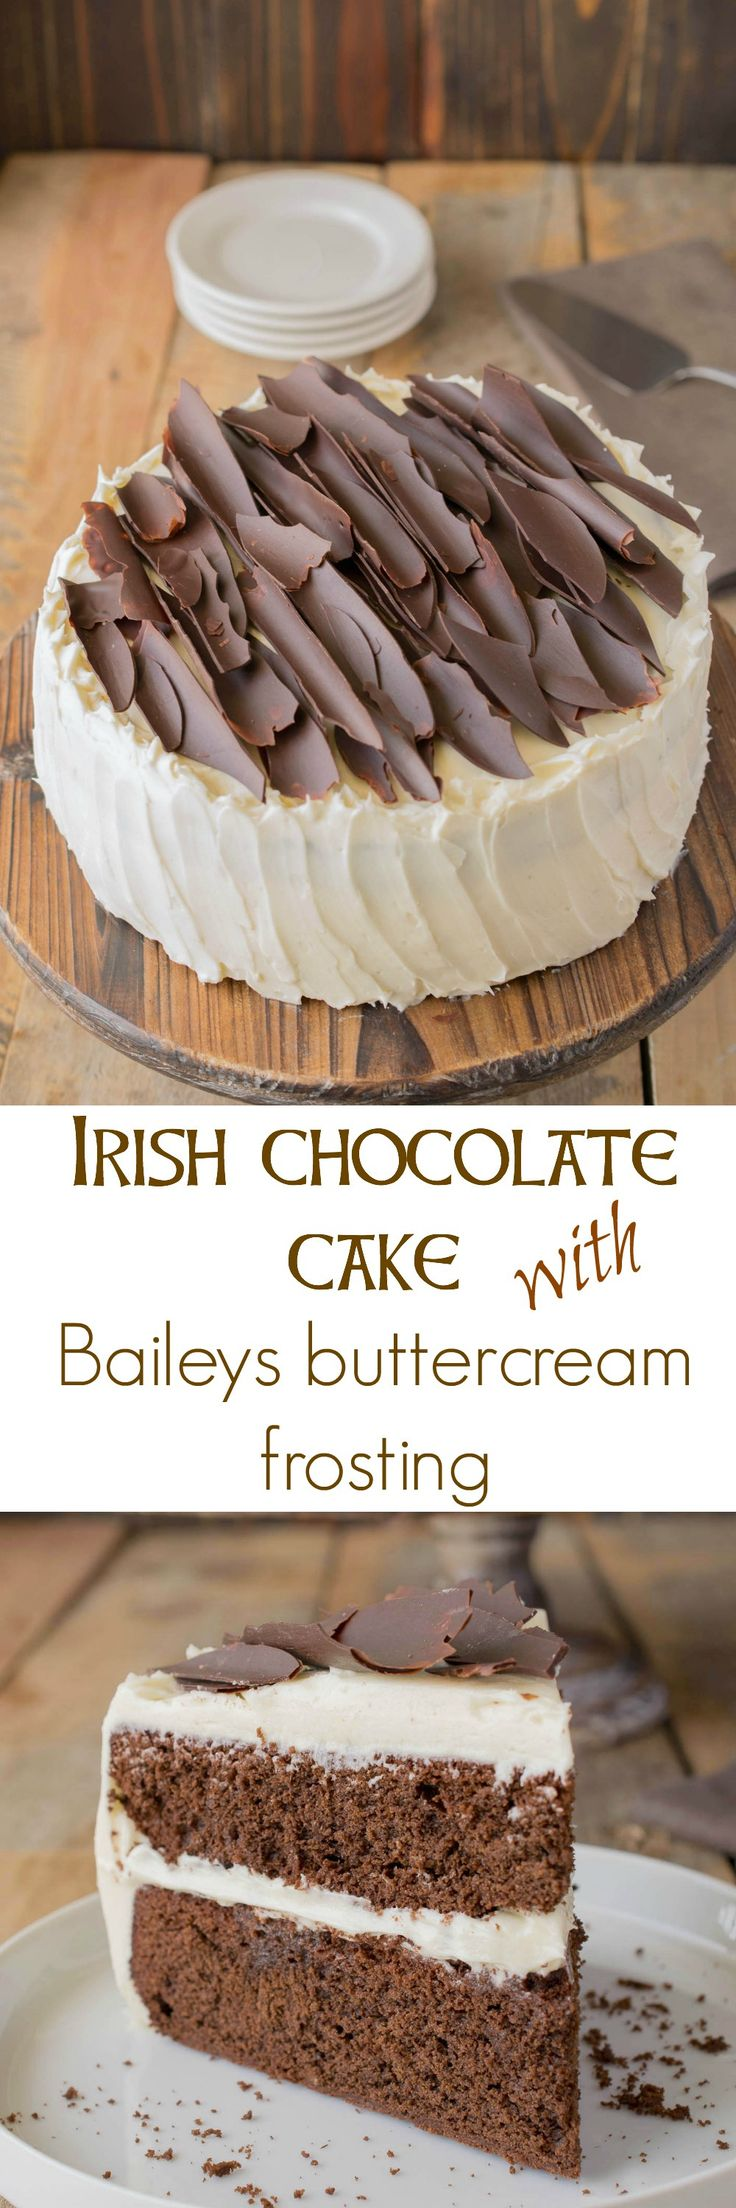 Irish chocolate cake with Baileys buttercream frosting is both decadent and…